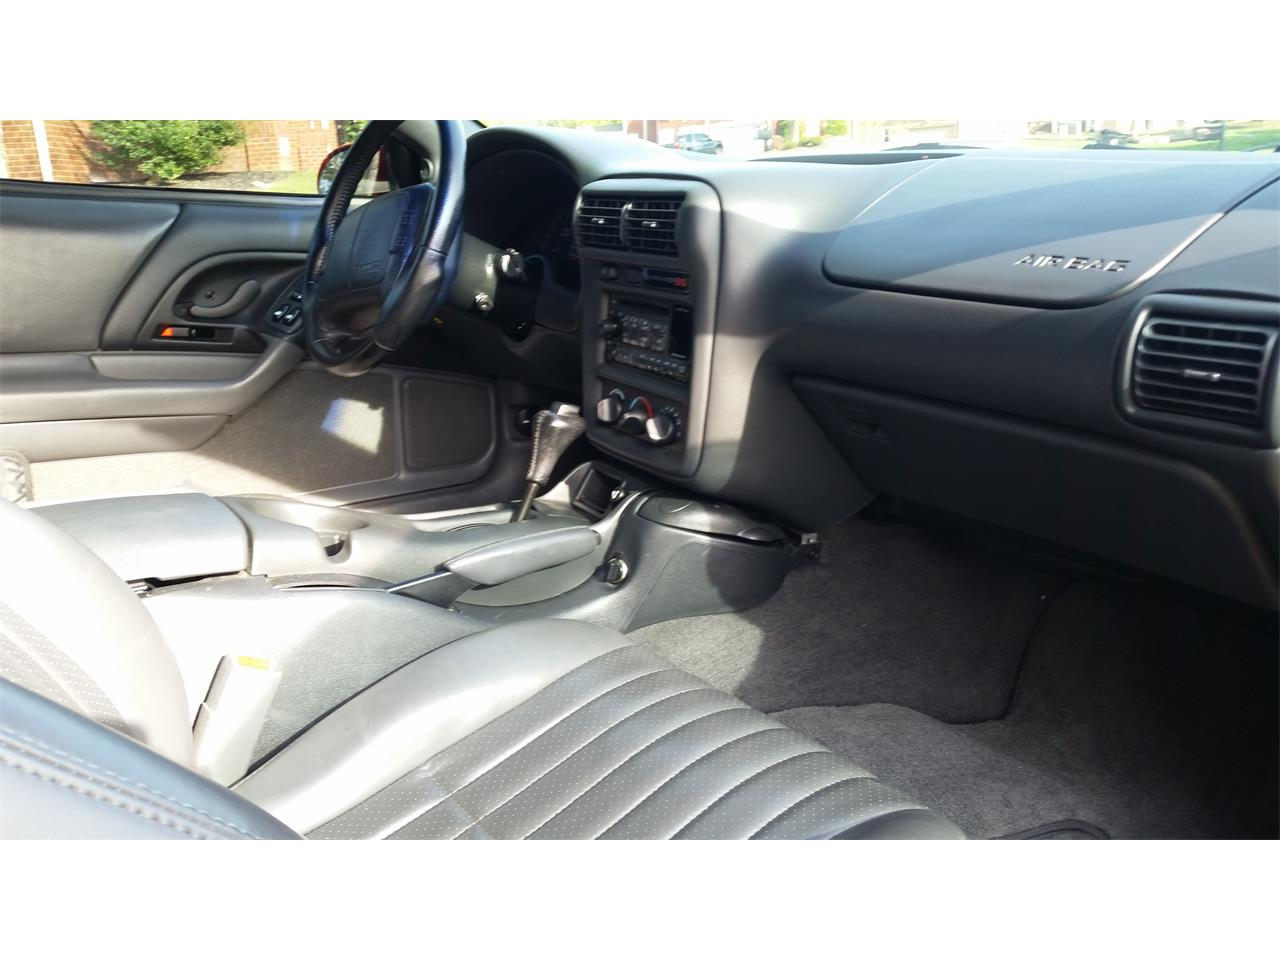 Large Picture of '97 Chevrolet Camaro SS Z28 Offered by a Private Seller - KW6A